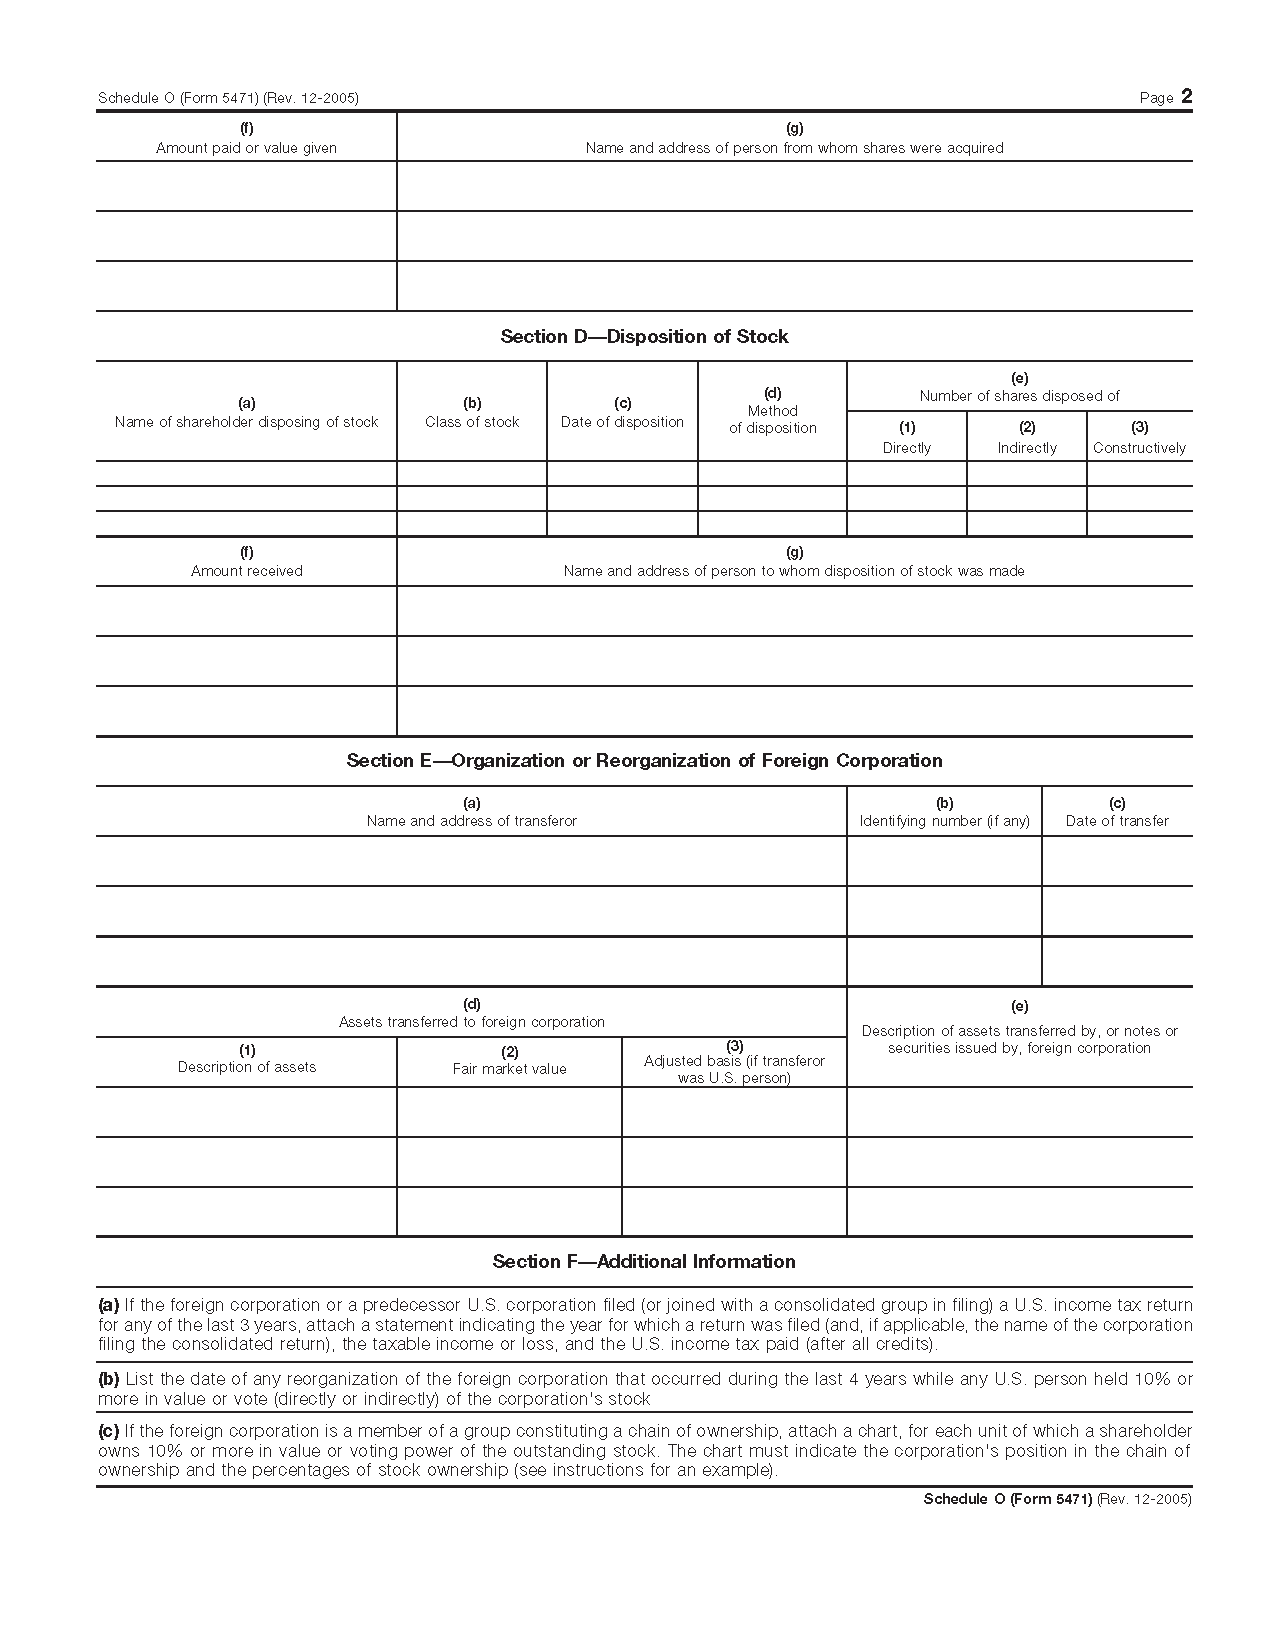 Form 5471 schedule o organization or reorganization of foreign view all 2011 irs tax forms falaconquin